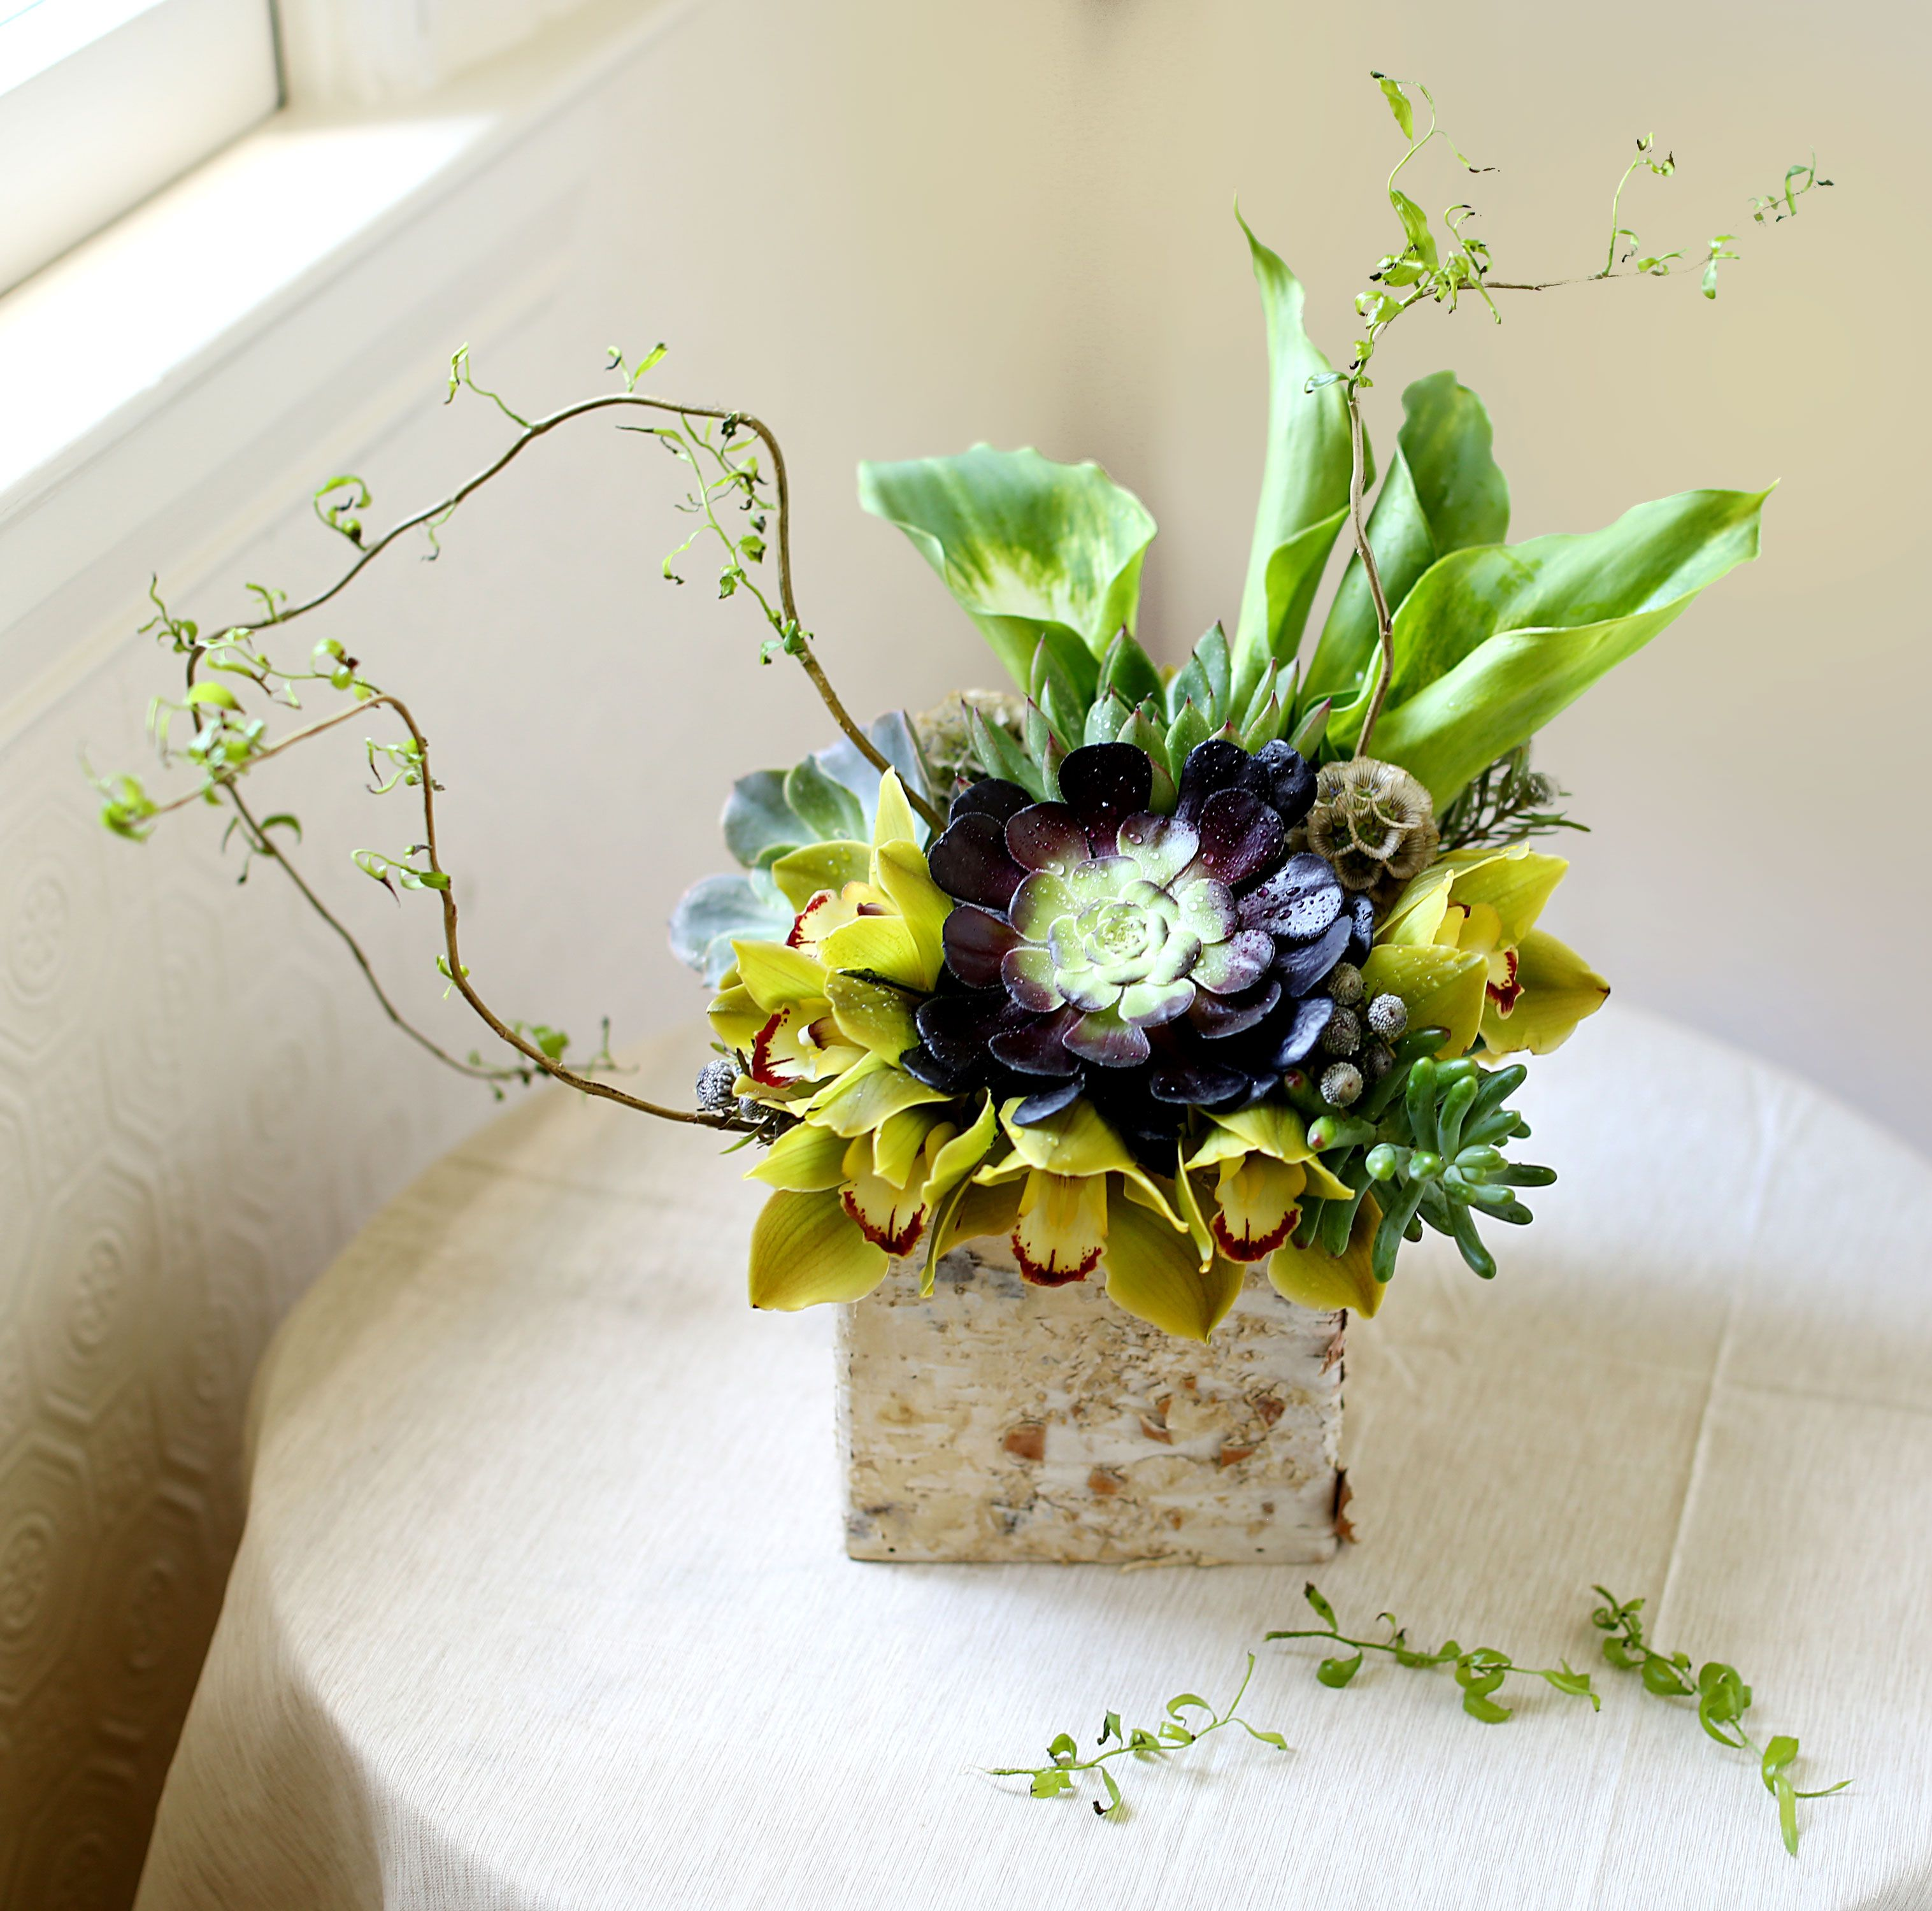 Aeonium Succulents Arrangements With Cymbidium Orchid Curly Willow Tip Calla Lilly Leucodendron Scabio Succulent Arrangements Cymbidium Orchids Zebra Plant